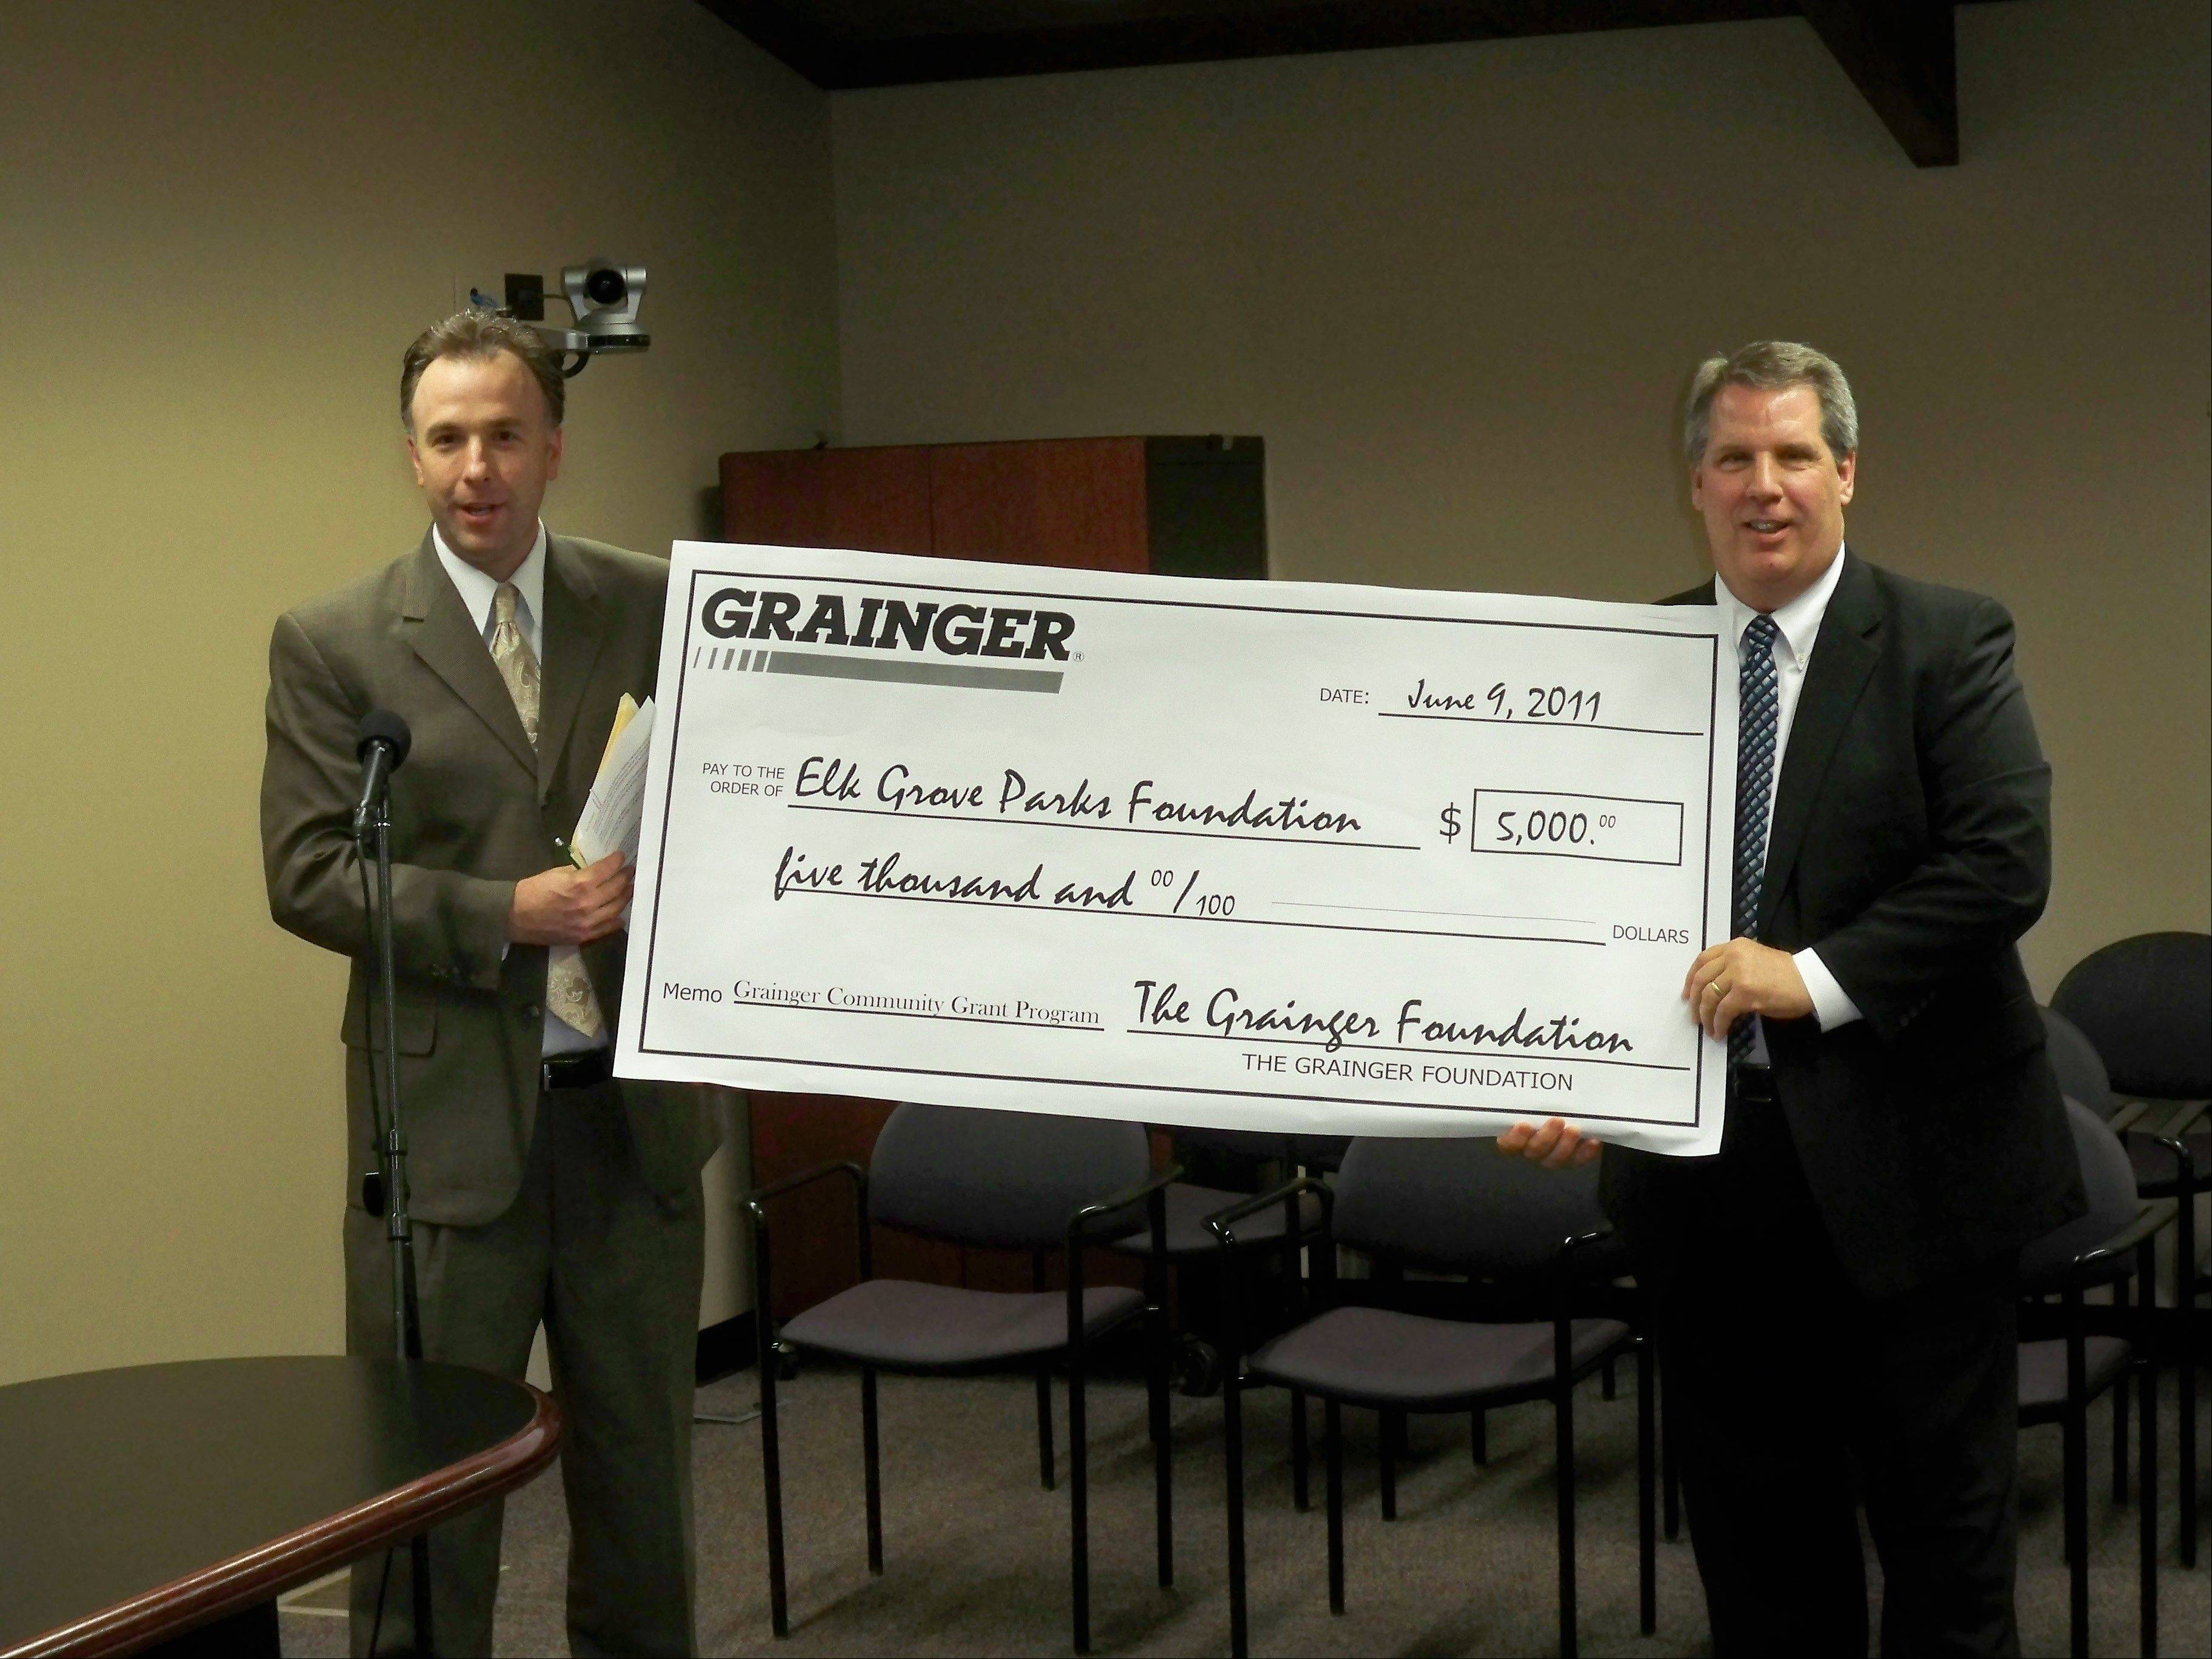 James Steffens, left, branch manager of Grainger in Bensenville, presents a $5,000 grant check to Tom Cooke, park board commissioner and president of the Elk Grove Parks Foundation.